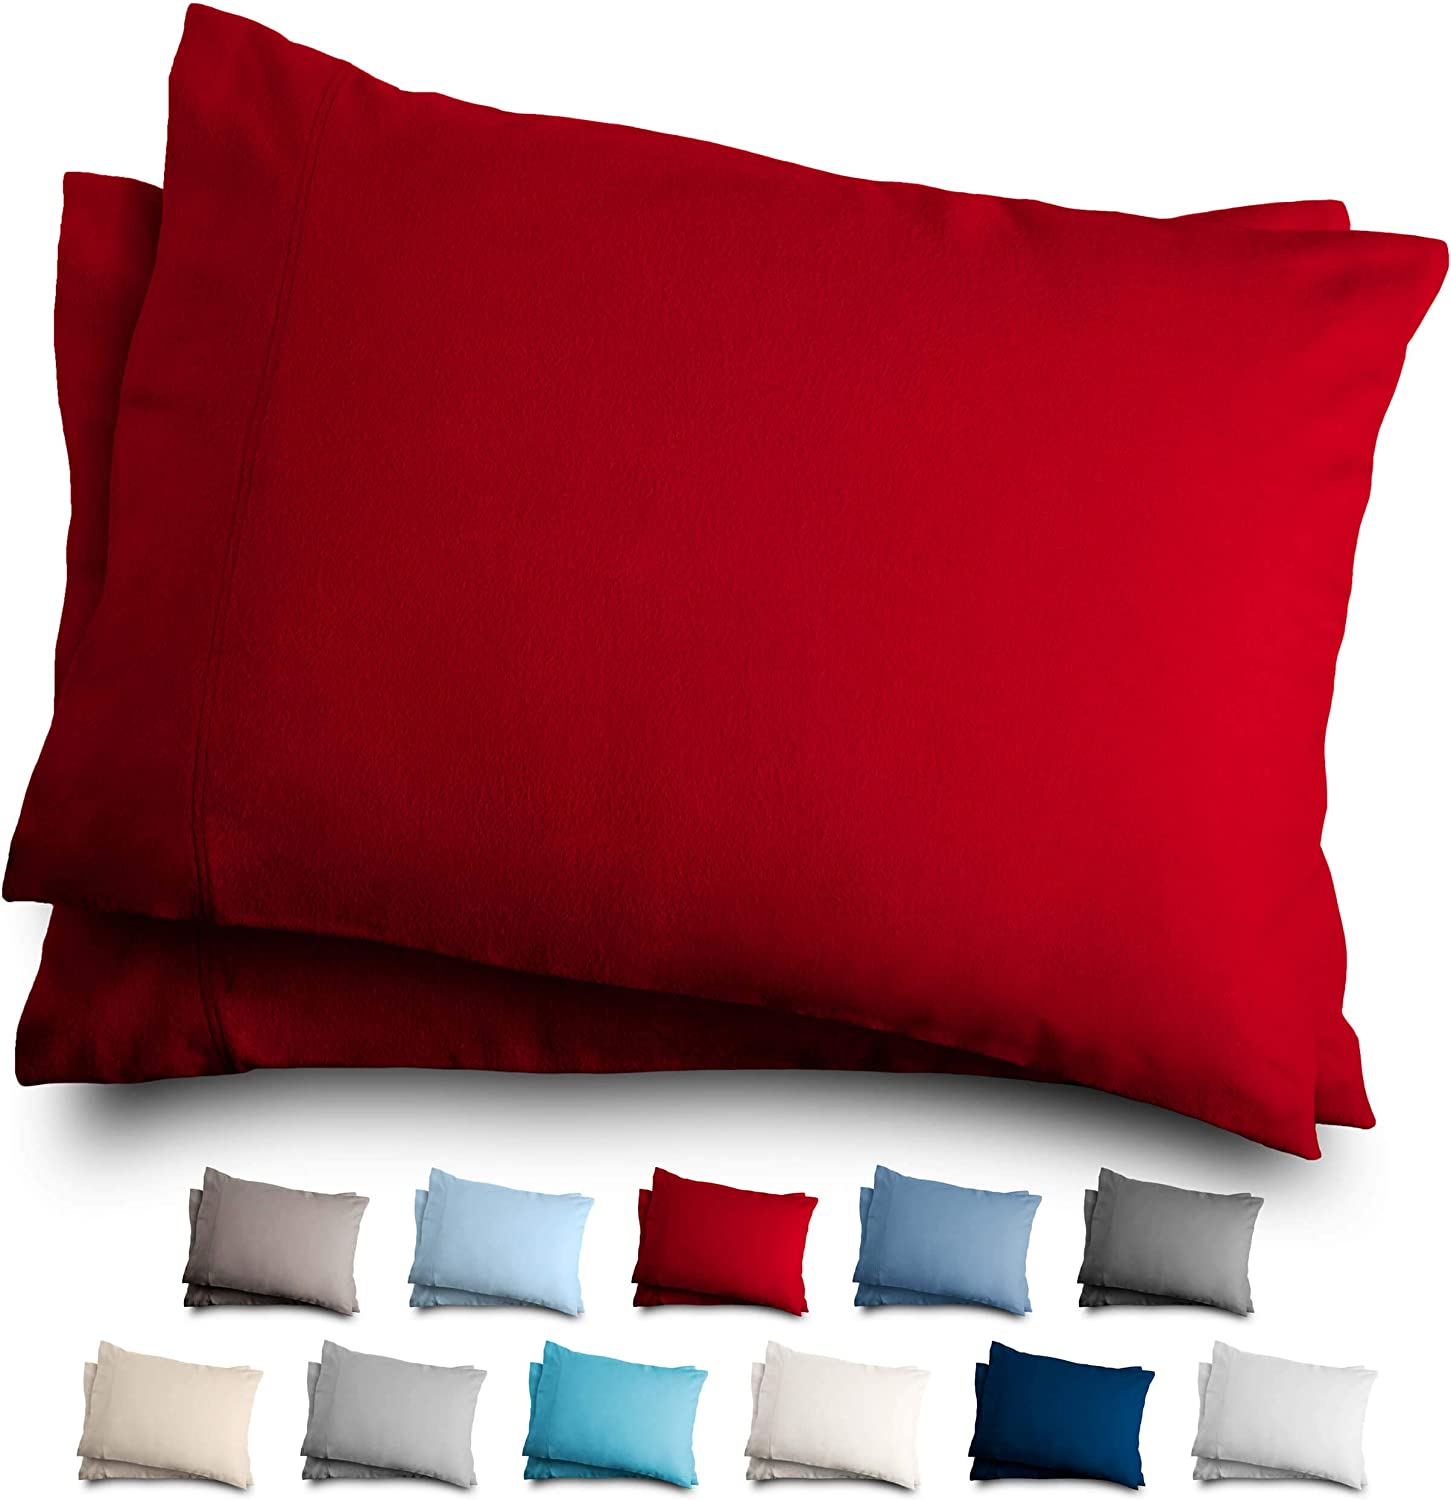 Bare Home Standard Flannel Pillowcase Set - 100% Cotton - Velvety Soft Heavyweight - Double Brushed Flannel (Standard Pillowcase Set of 2, Red)